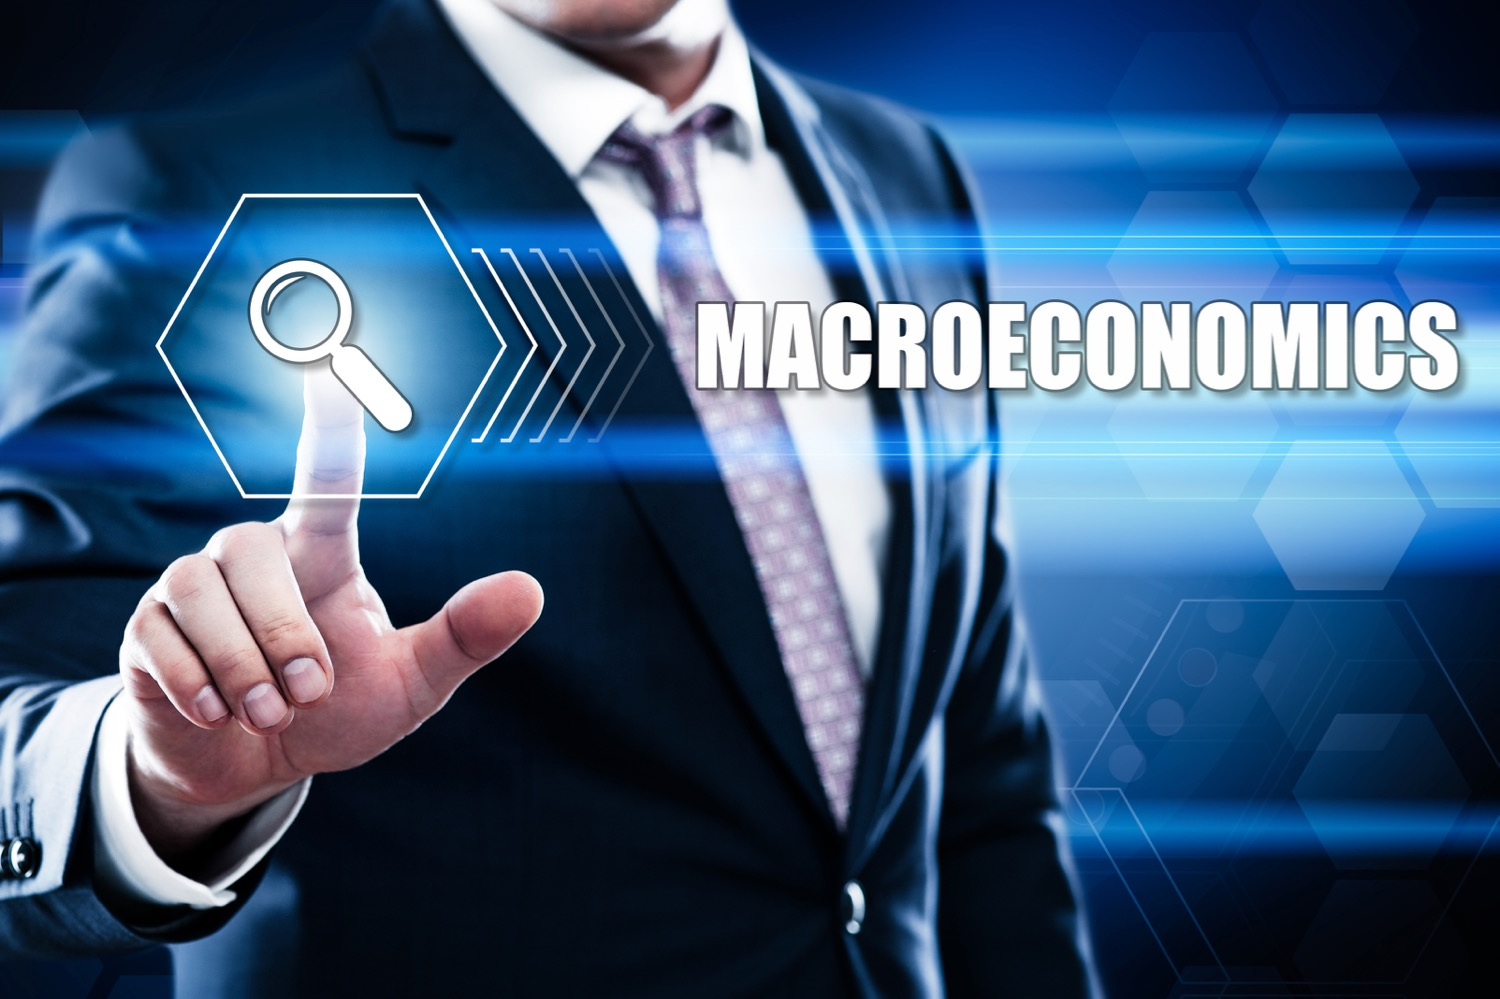 Business, technology, internet concept on hexagons and transparent honeycomb background. Businessman  pressing button on touch screen interface and select  macroeconomics.jpg